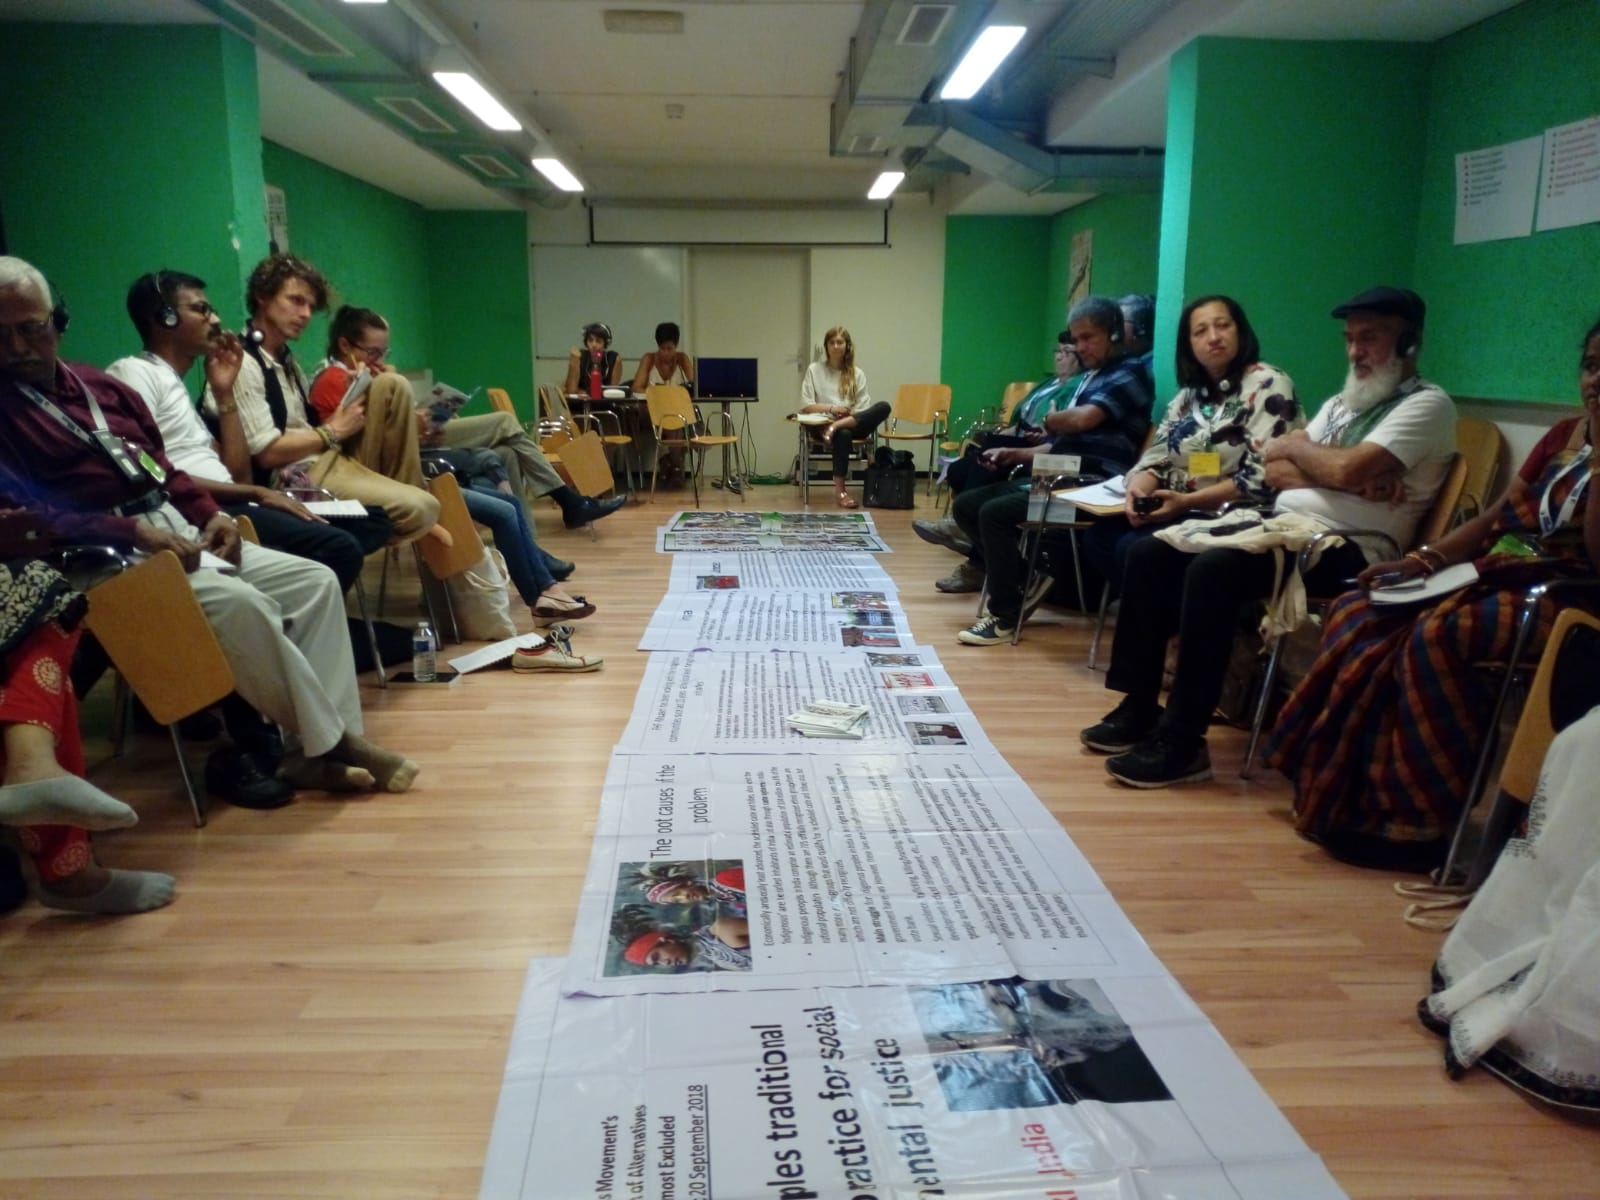 Images of the World Forum of Alternatives!